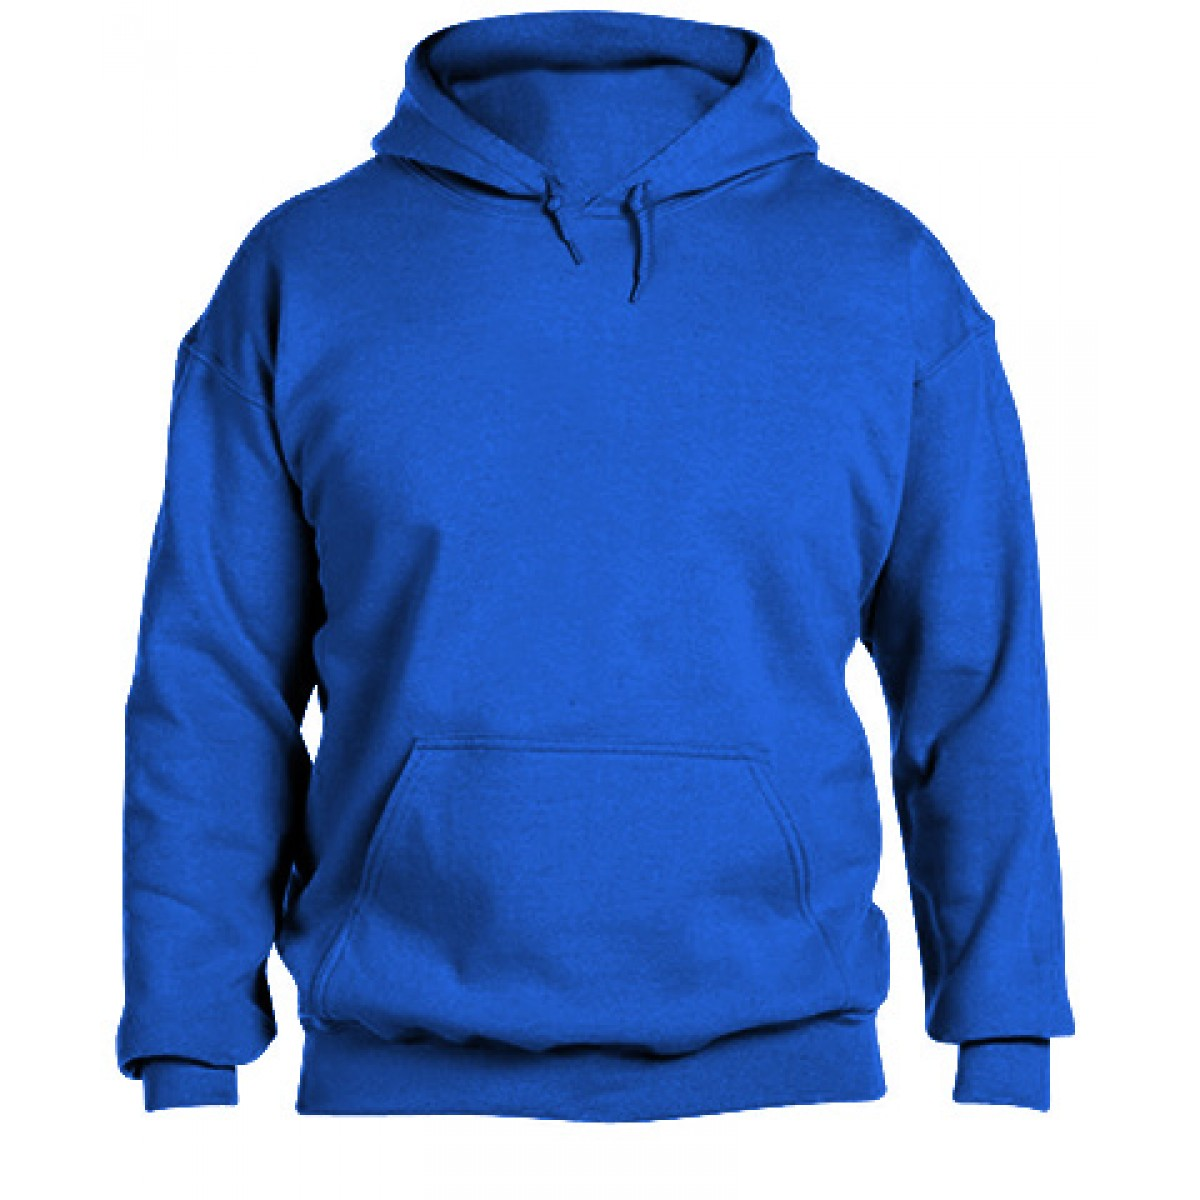 Hooded Sweatshirt  50/50 Heavy Blend-Royal Blue-L